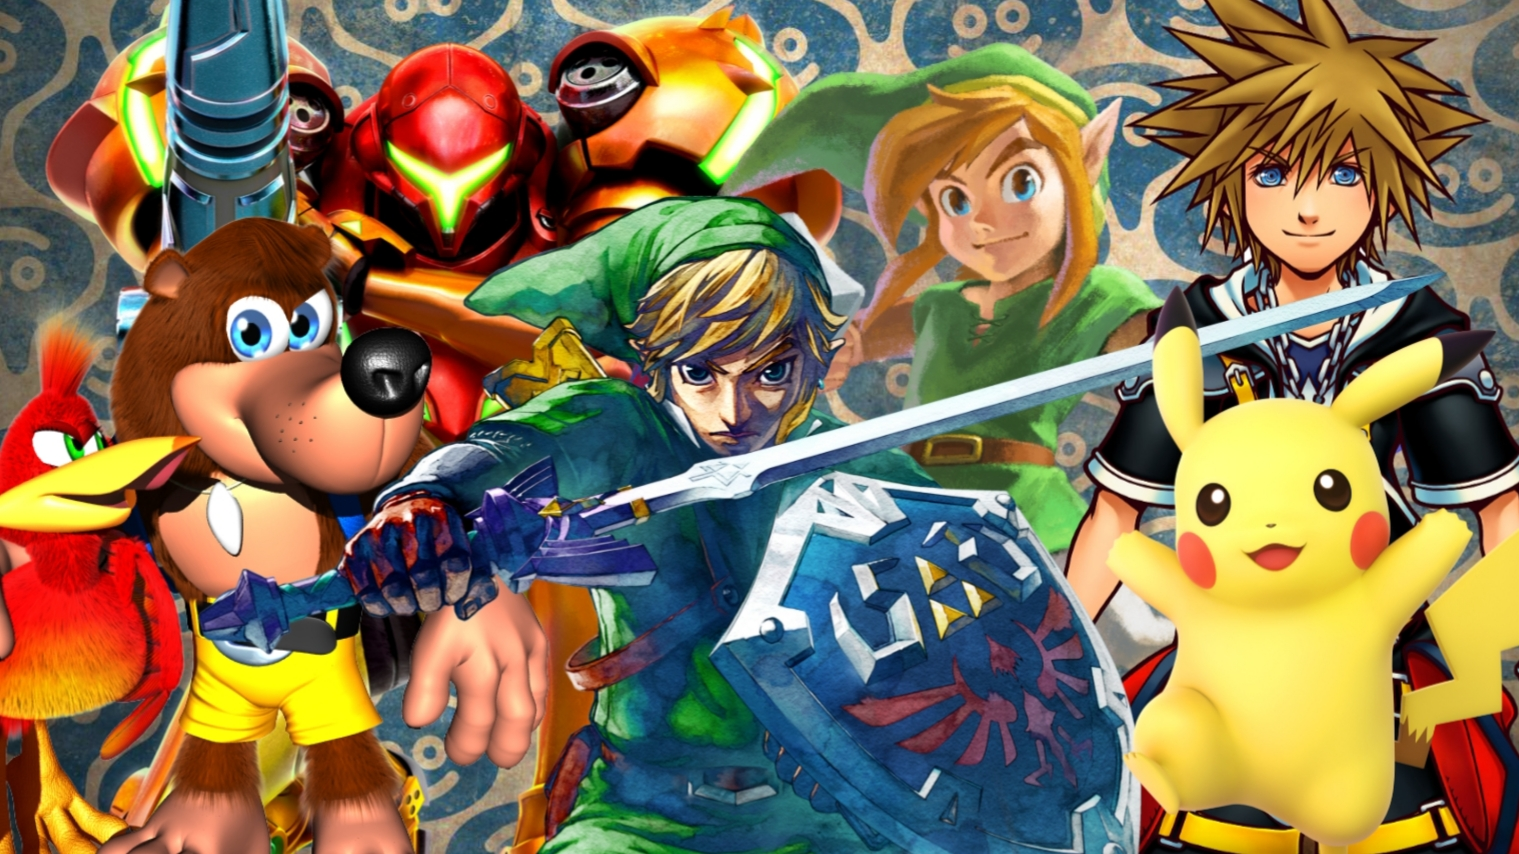 Nintendo Rumor Round Up! (Pokémon, Smash Bros, Metroid Prime and